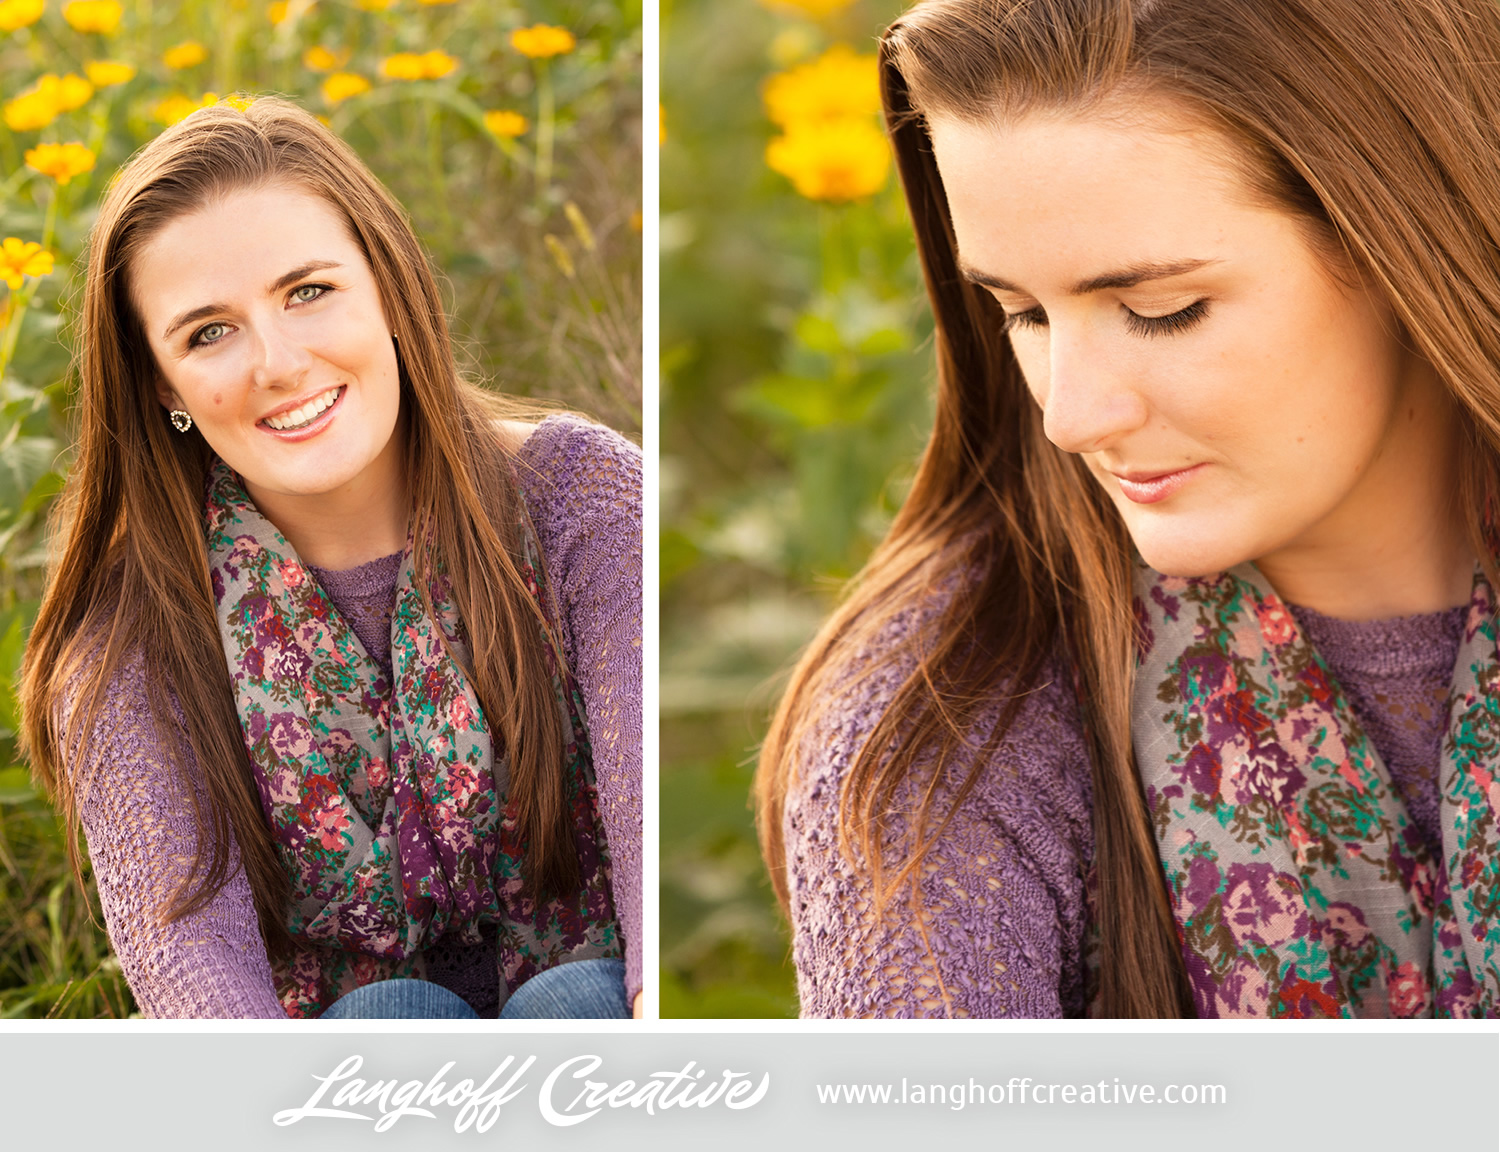 LanghoffCreative-2013RacineSeniorPortrait-Aja07-photo.jpg